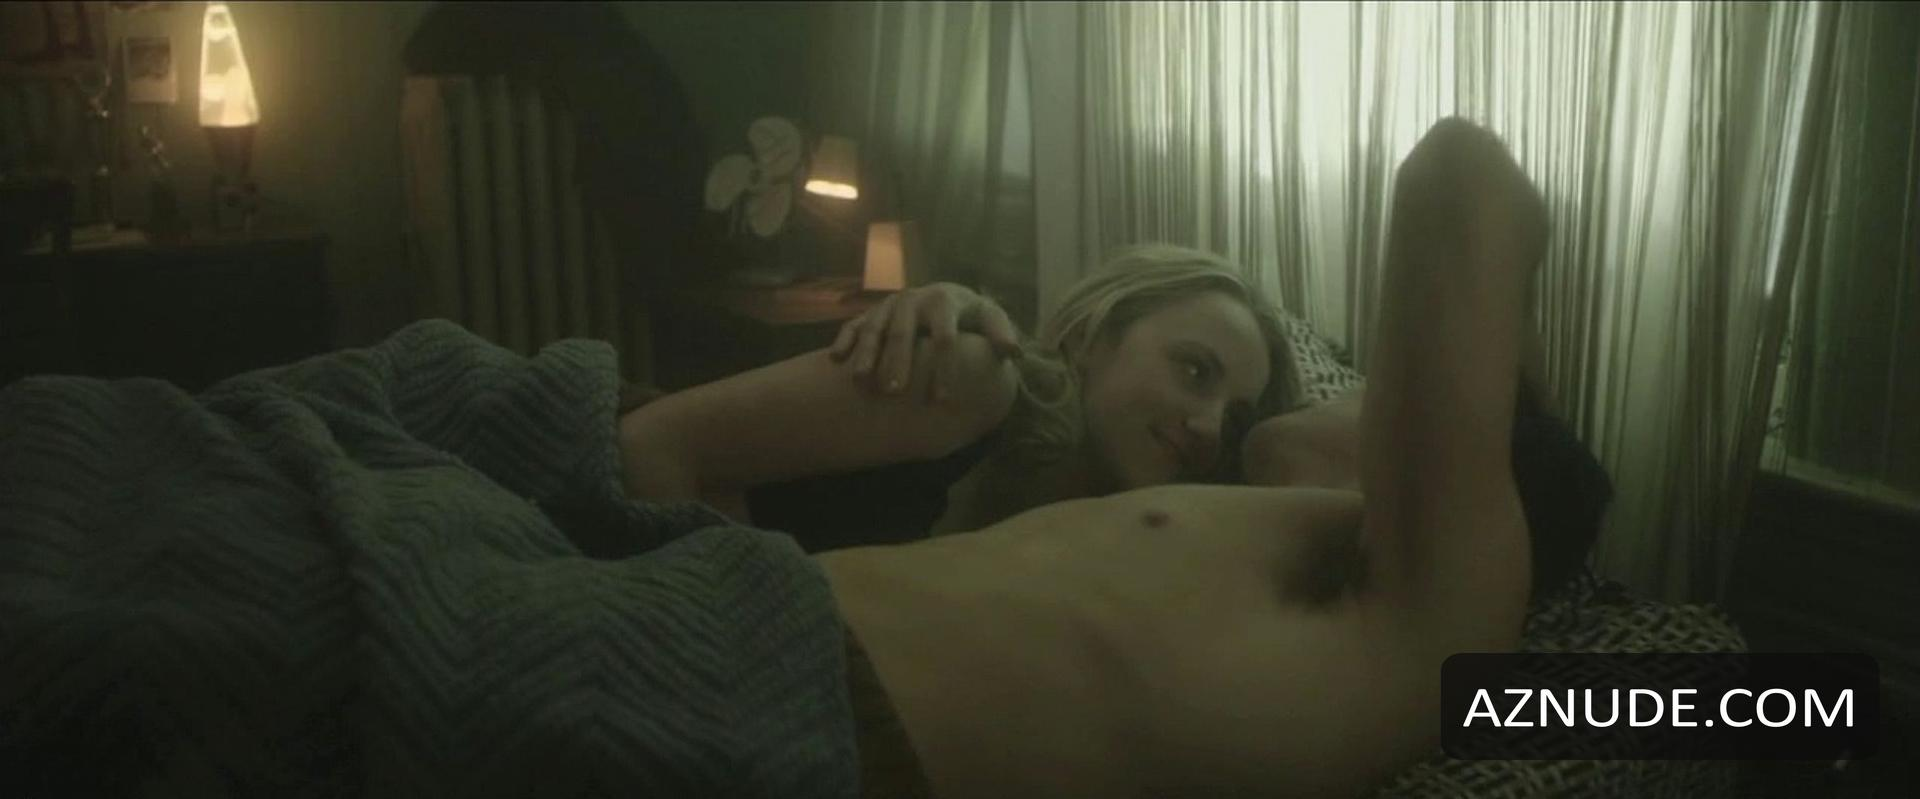 Useful evanna lynch nude harry potter are